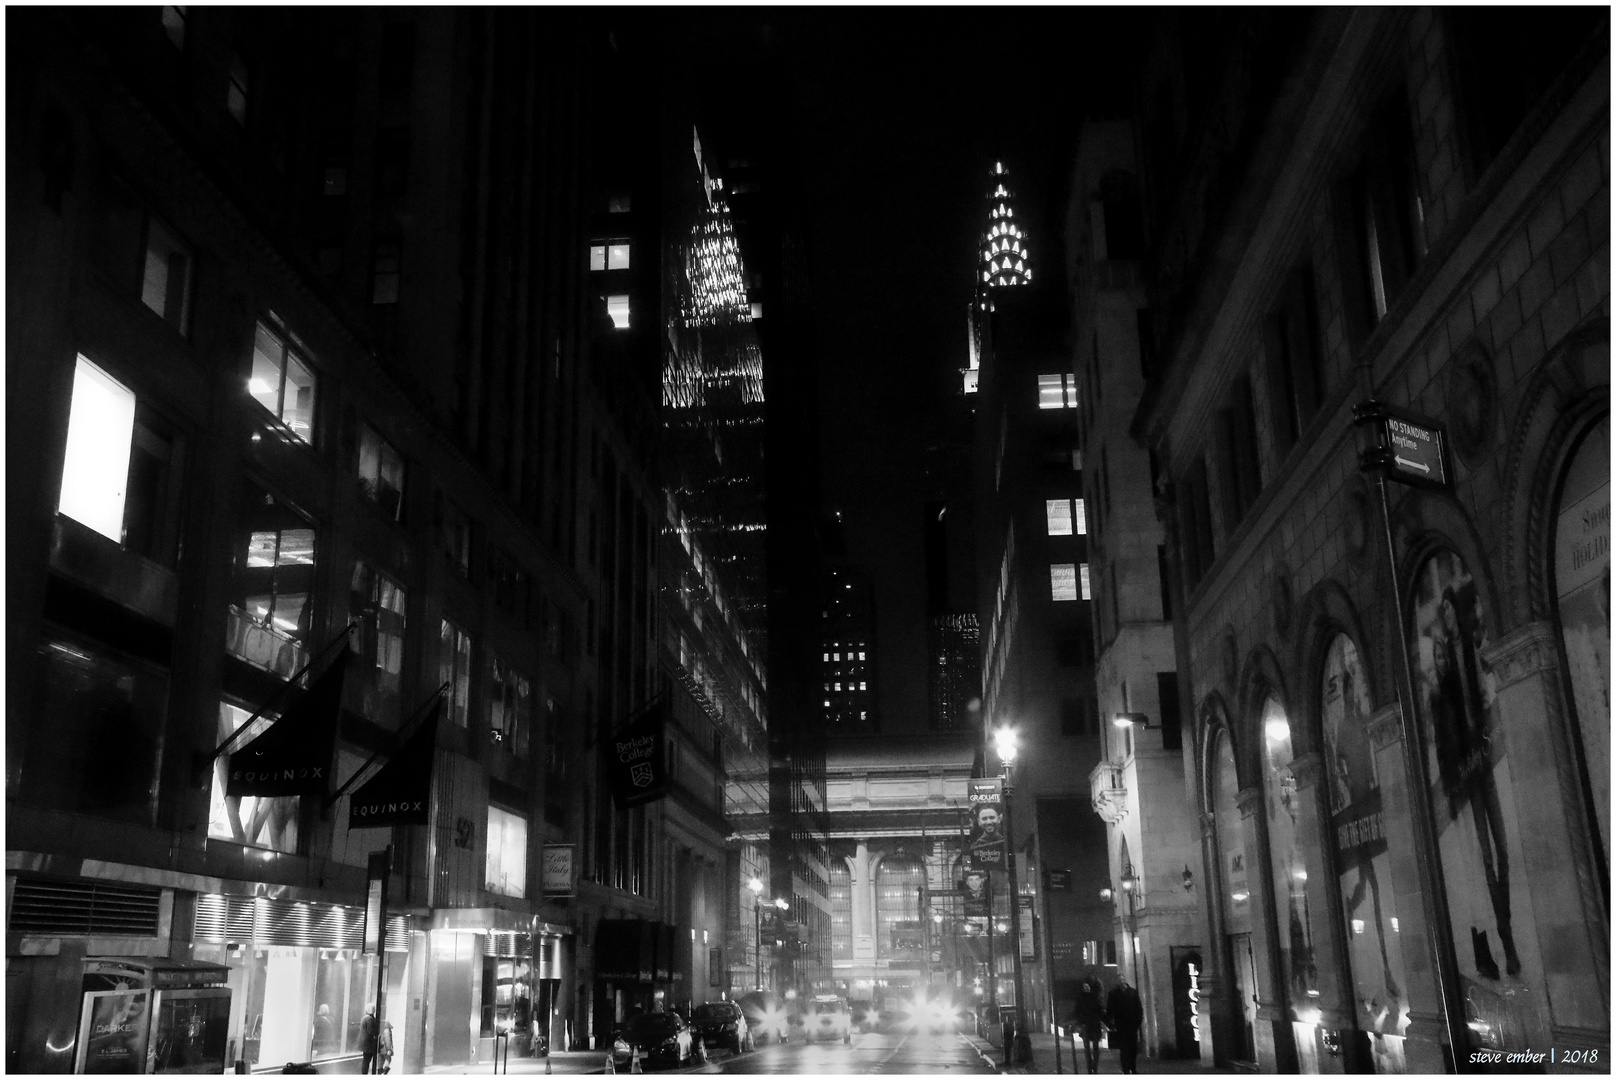 Twin Chryslers on a Wintry Night - a Midtown Nightscape